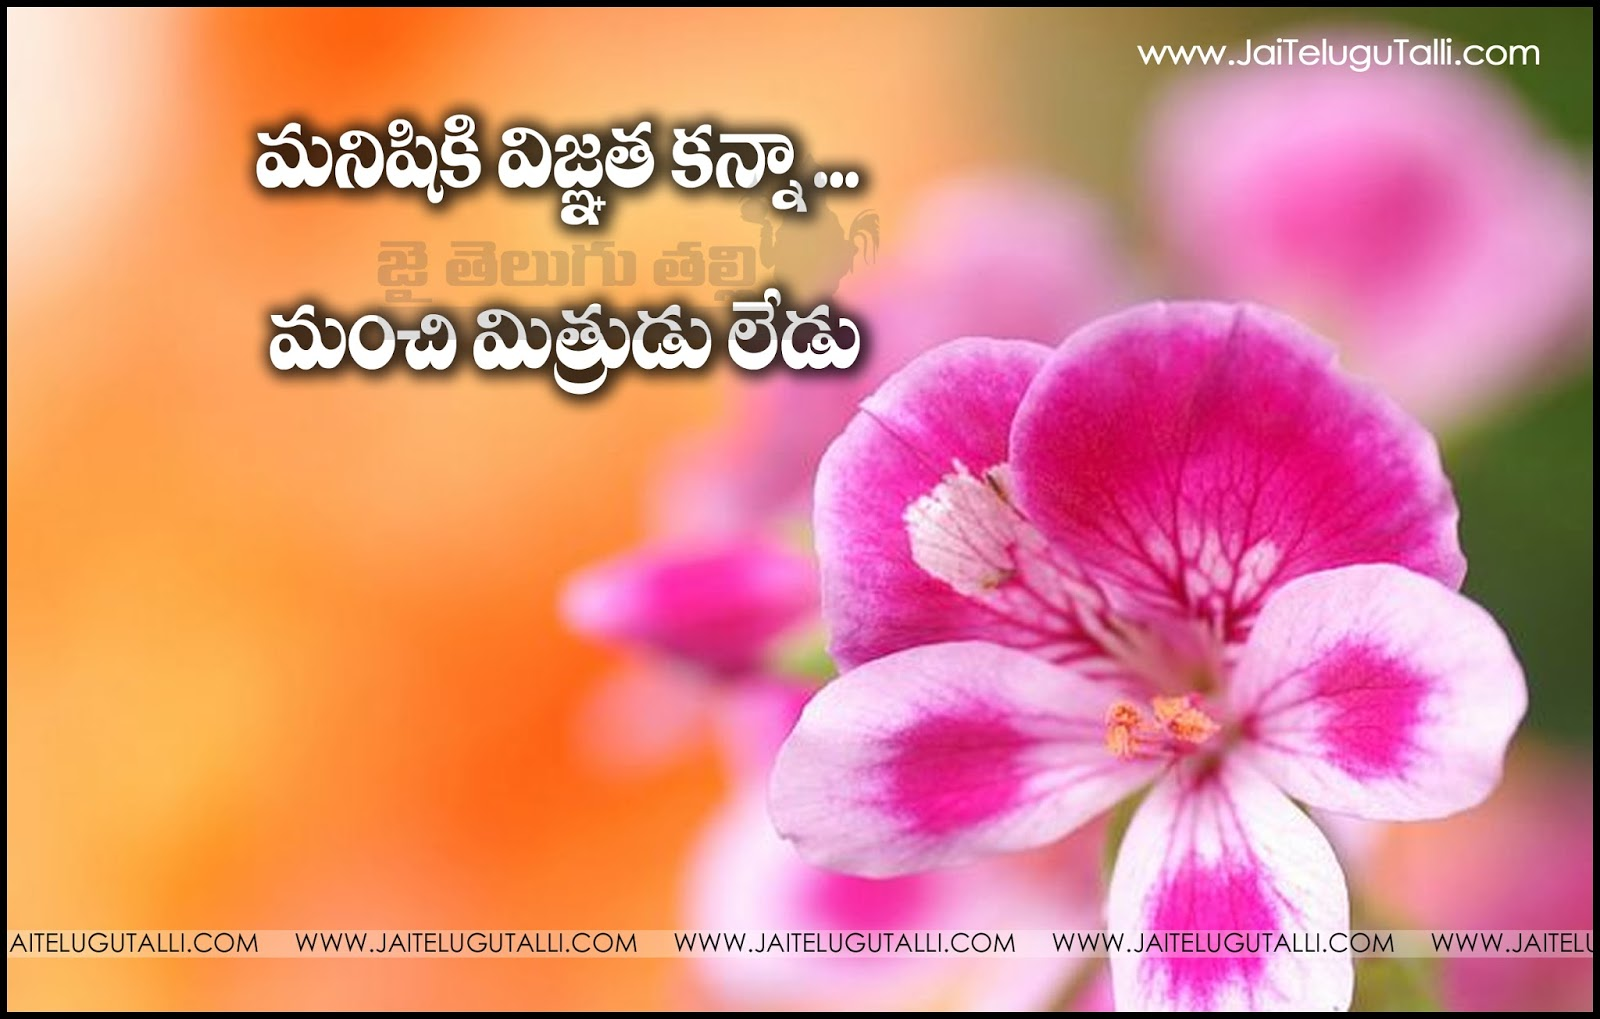 Inspirational Quotes About Friendship Top Telugu Quotes Friendship Quotations On Life Inspirational